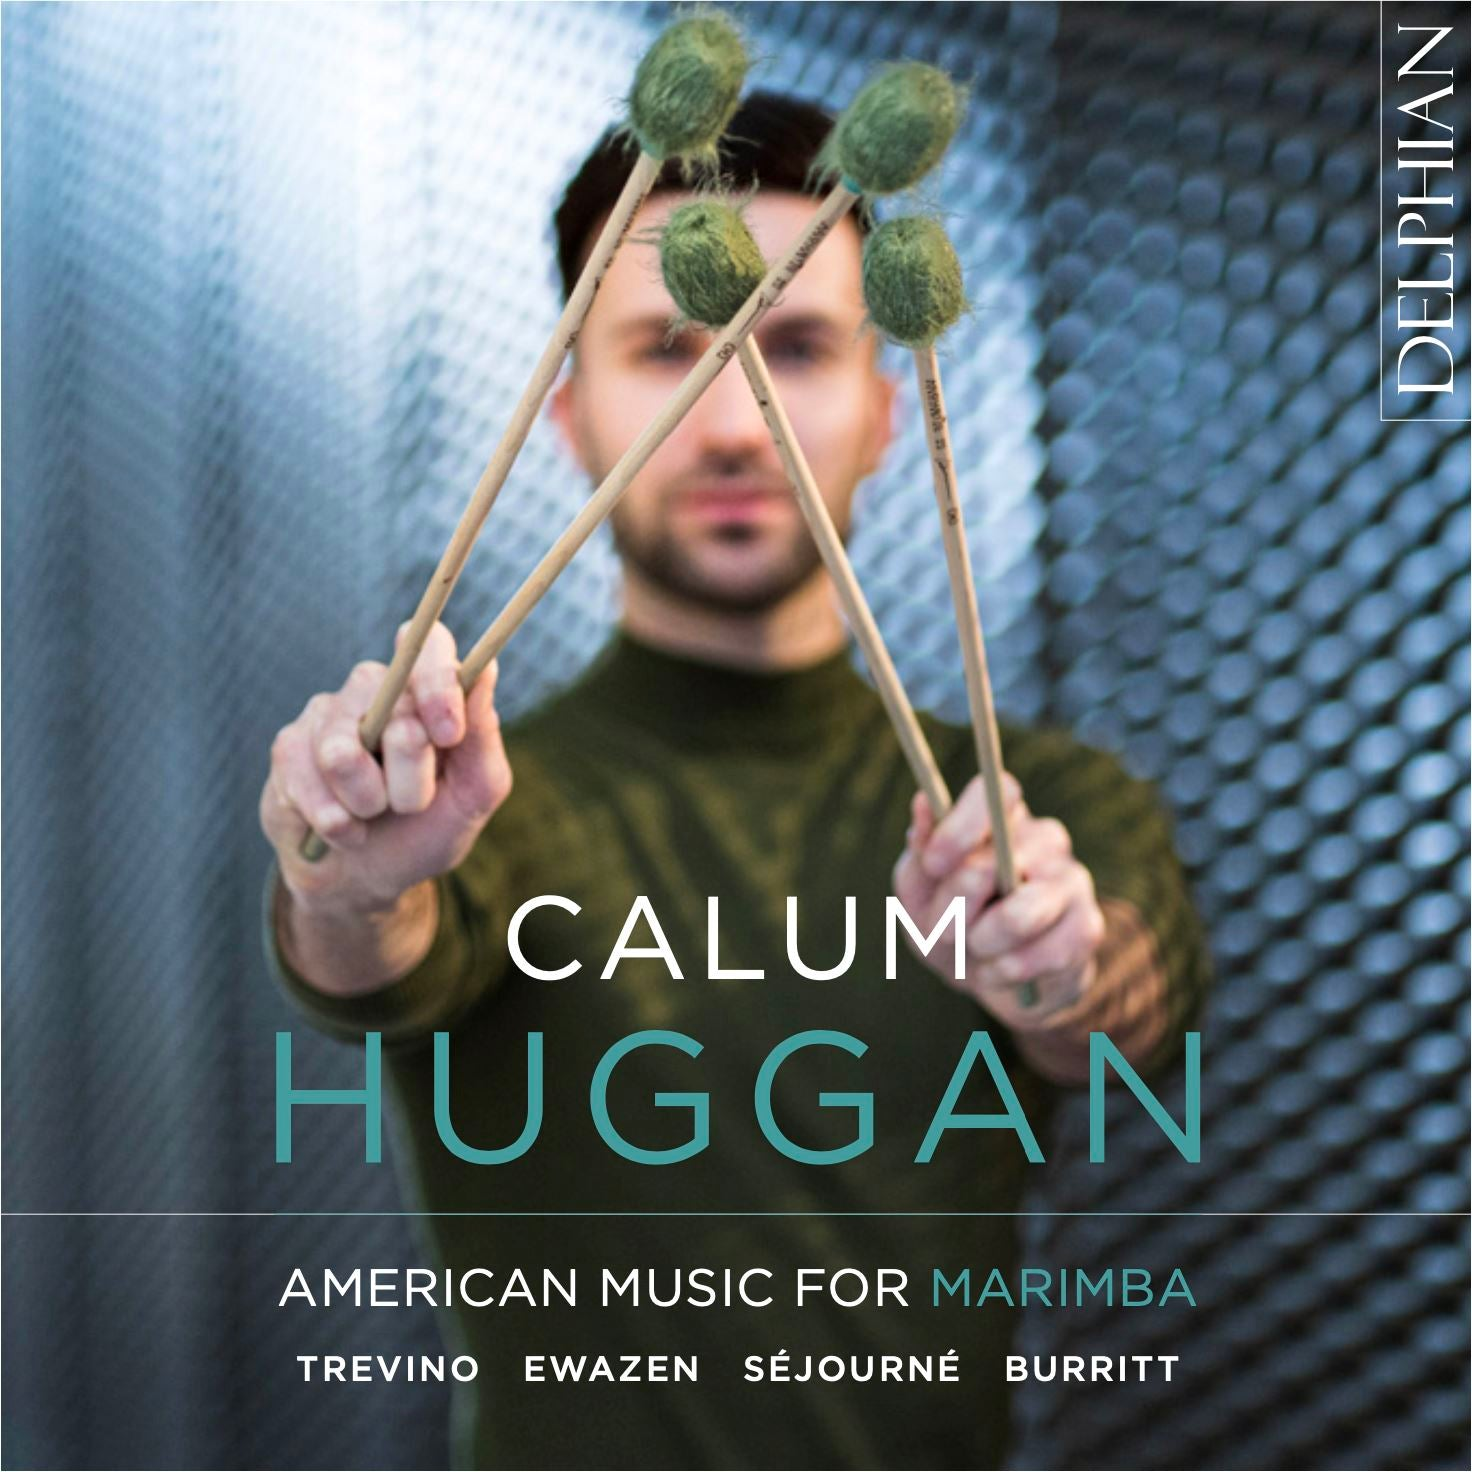 Calum Huggan: American Music for Marimba